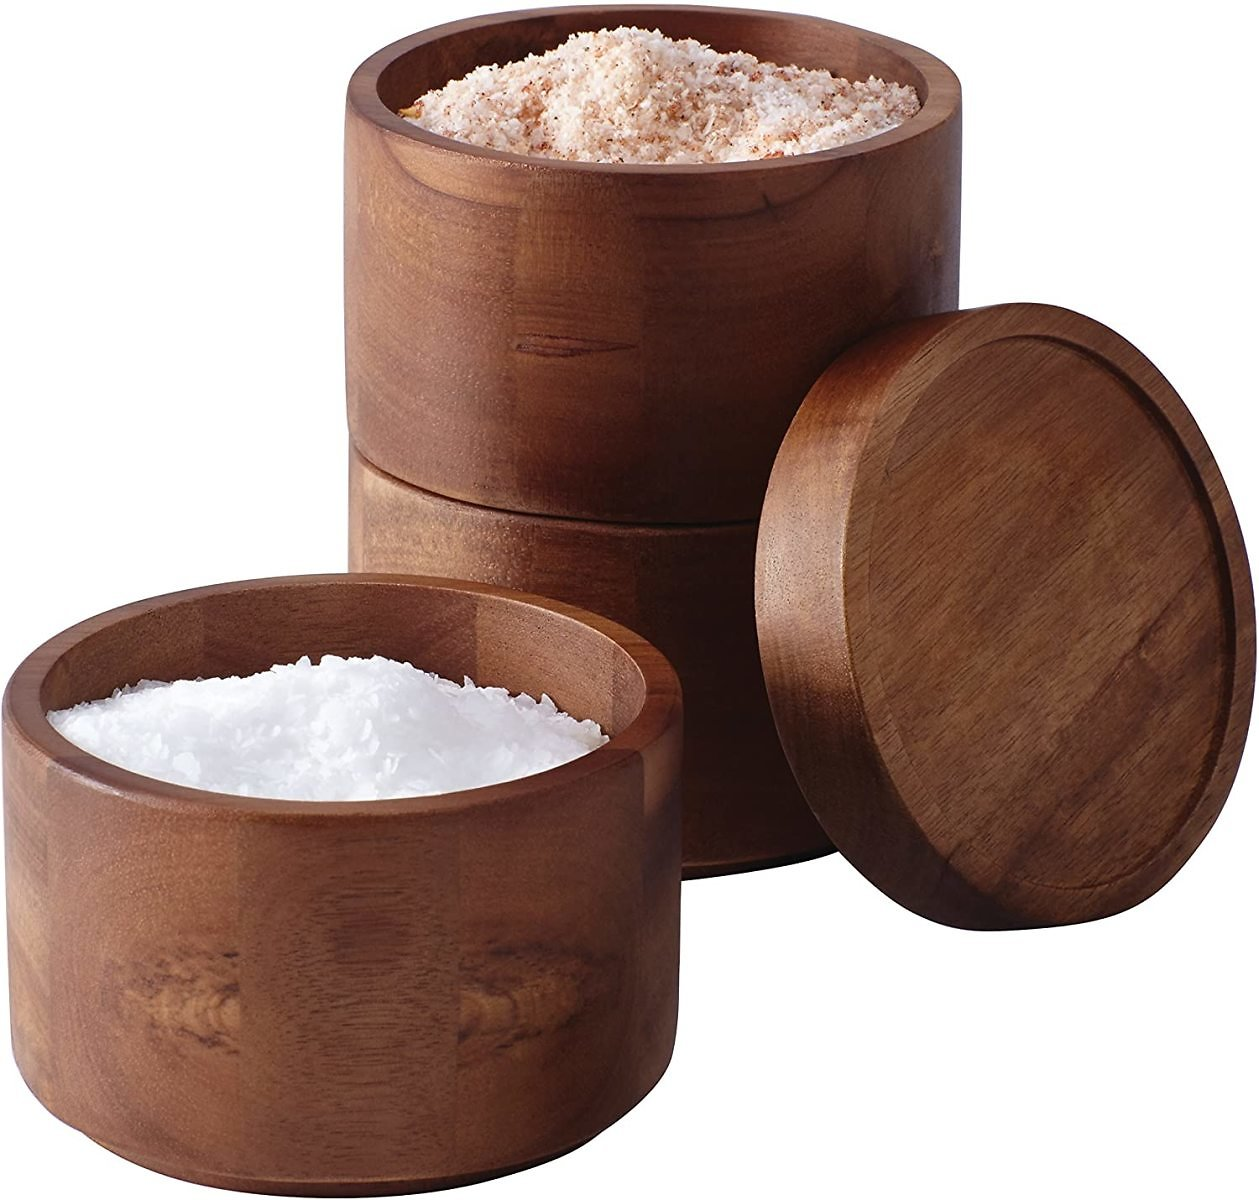 Rachael Ray Pantryware Wood Salt Cellar Stacking Set / Wood Salt Box Stacking Set3 Piece, Brown